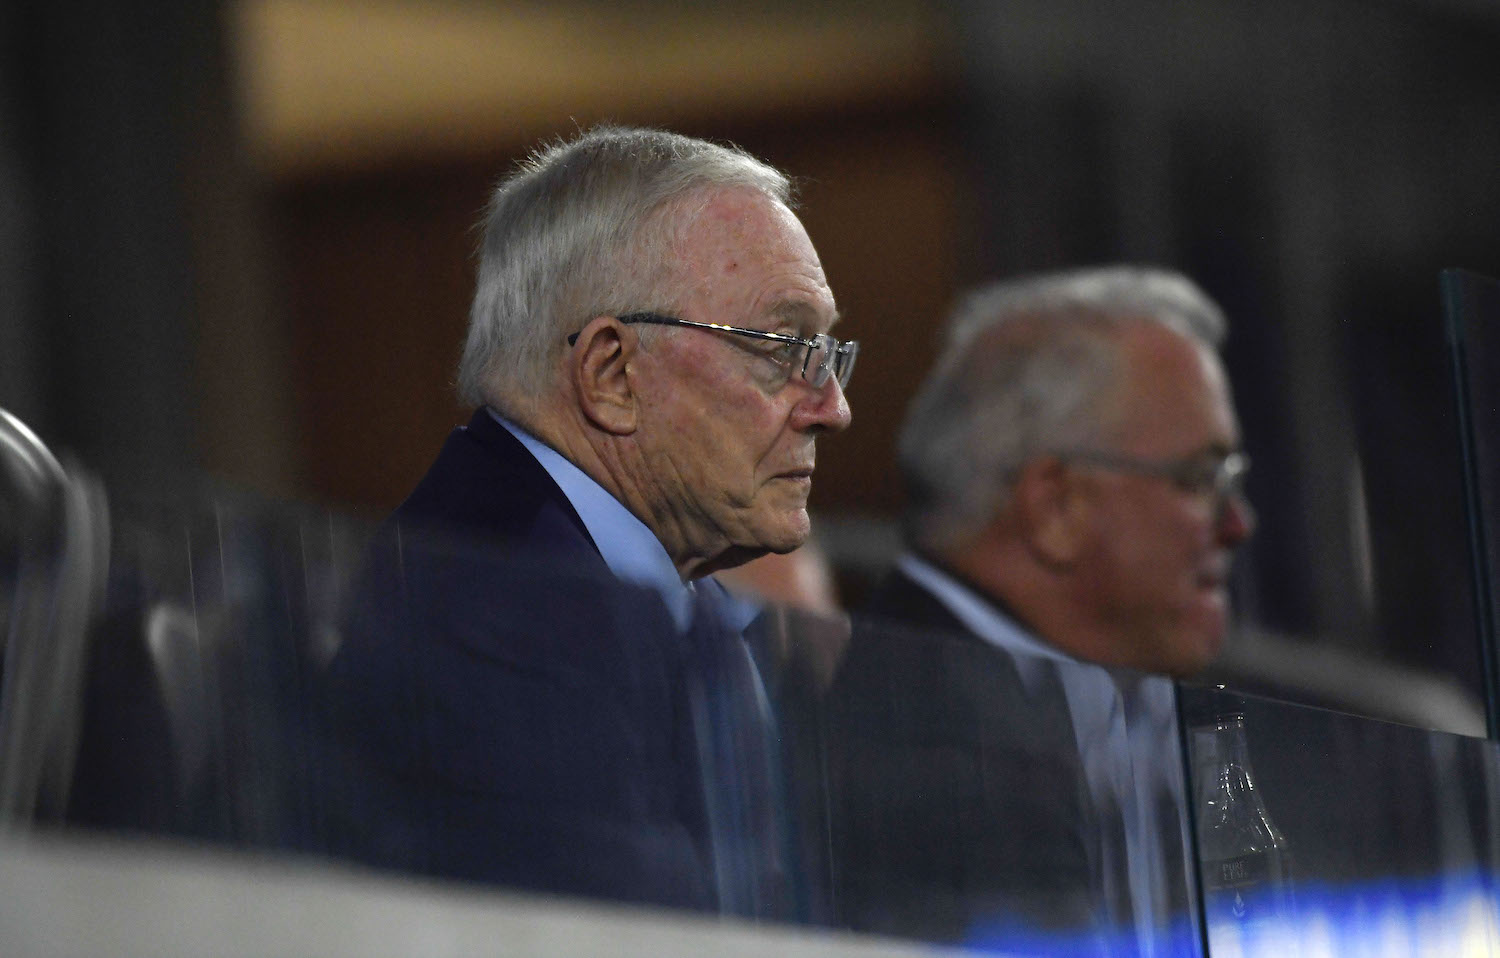 Dallas Cowboys Jerry Jones Unclear if NFL Boycott had effect on ratings